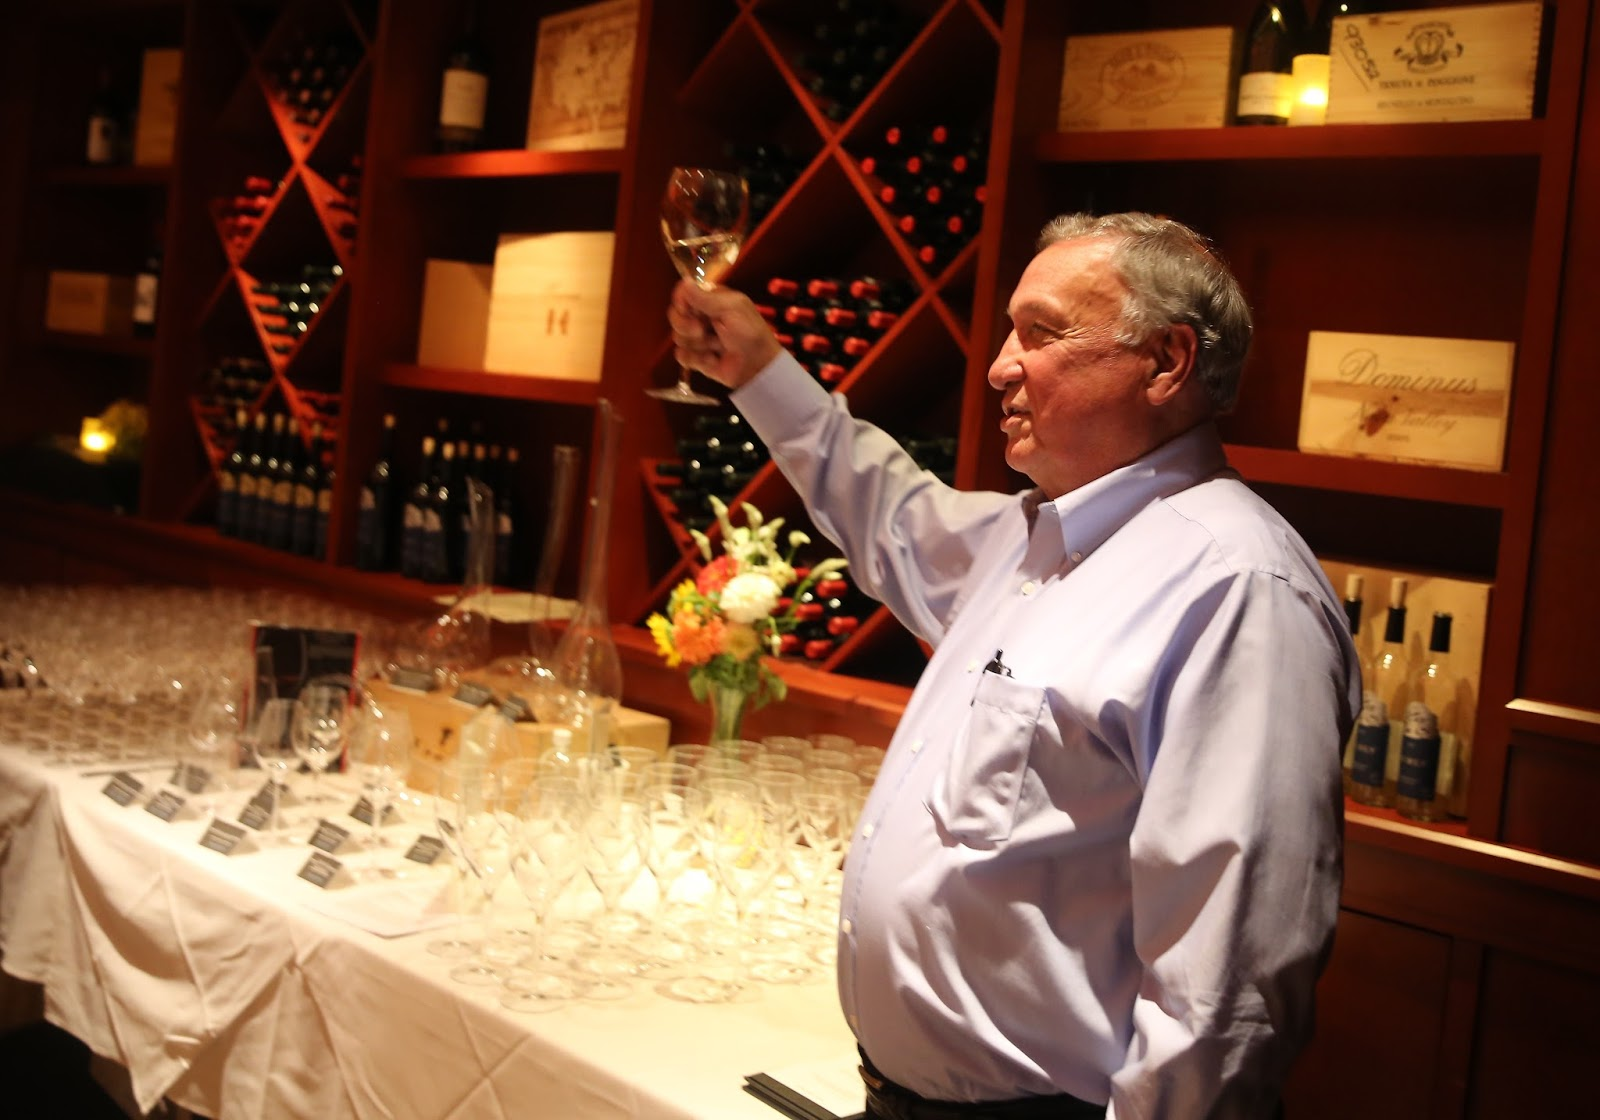 Hank McCrorie of Burly Wines talks about his wines at a wine dinner inside Fleming's Steak House in Raleigh.